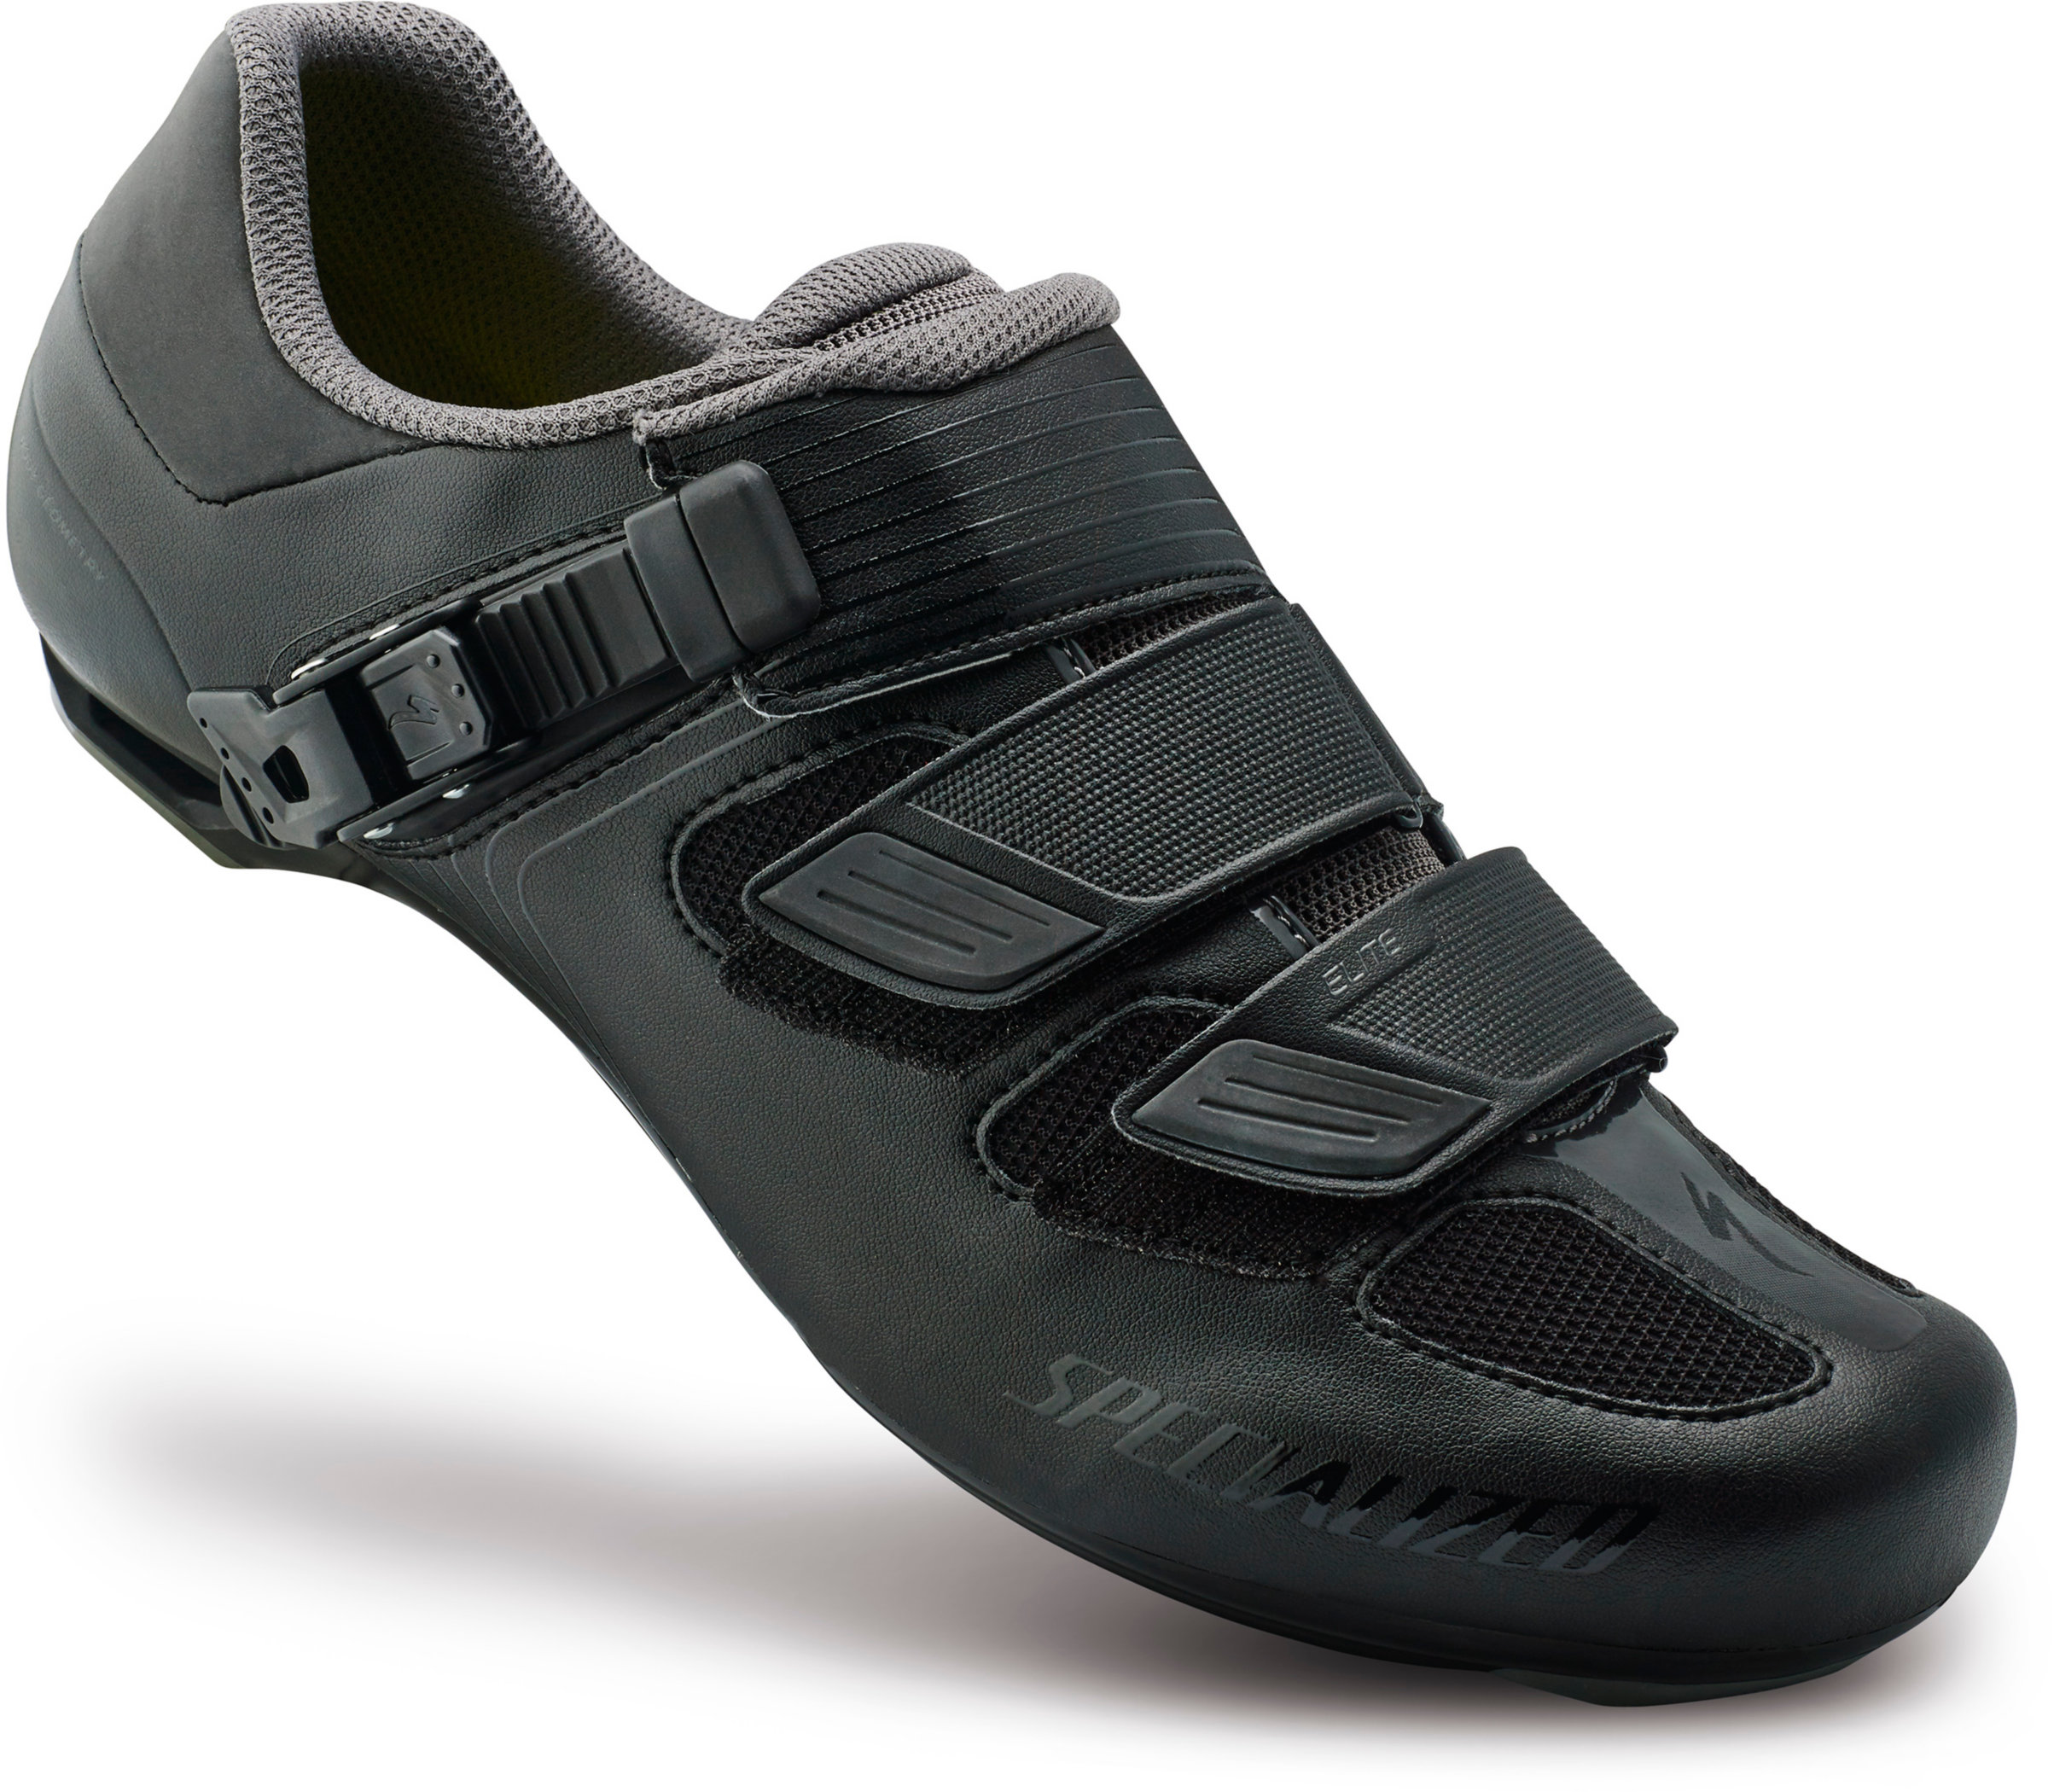 SPECIALIZED ELITE RD SHOE BLK 36/4.25 - Bikedreams & Dustbikes